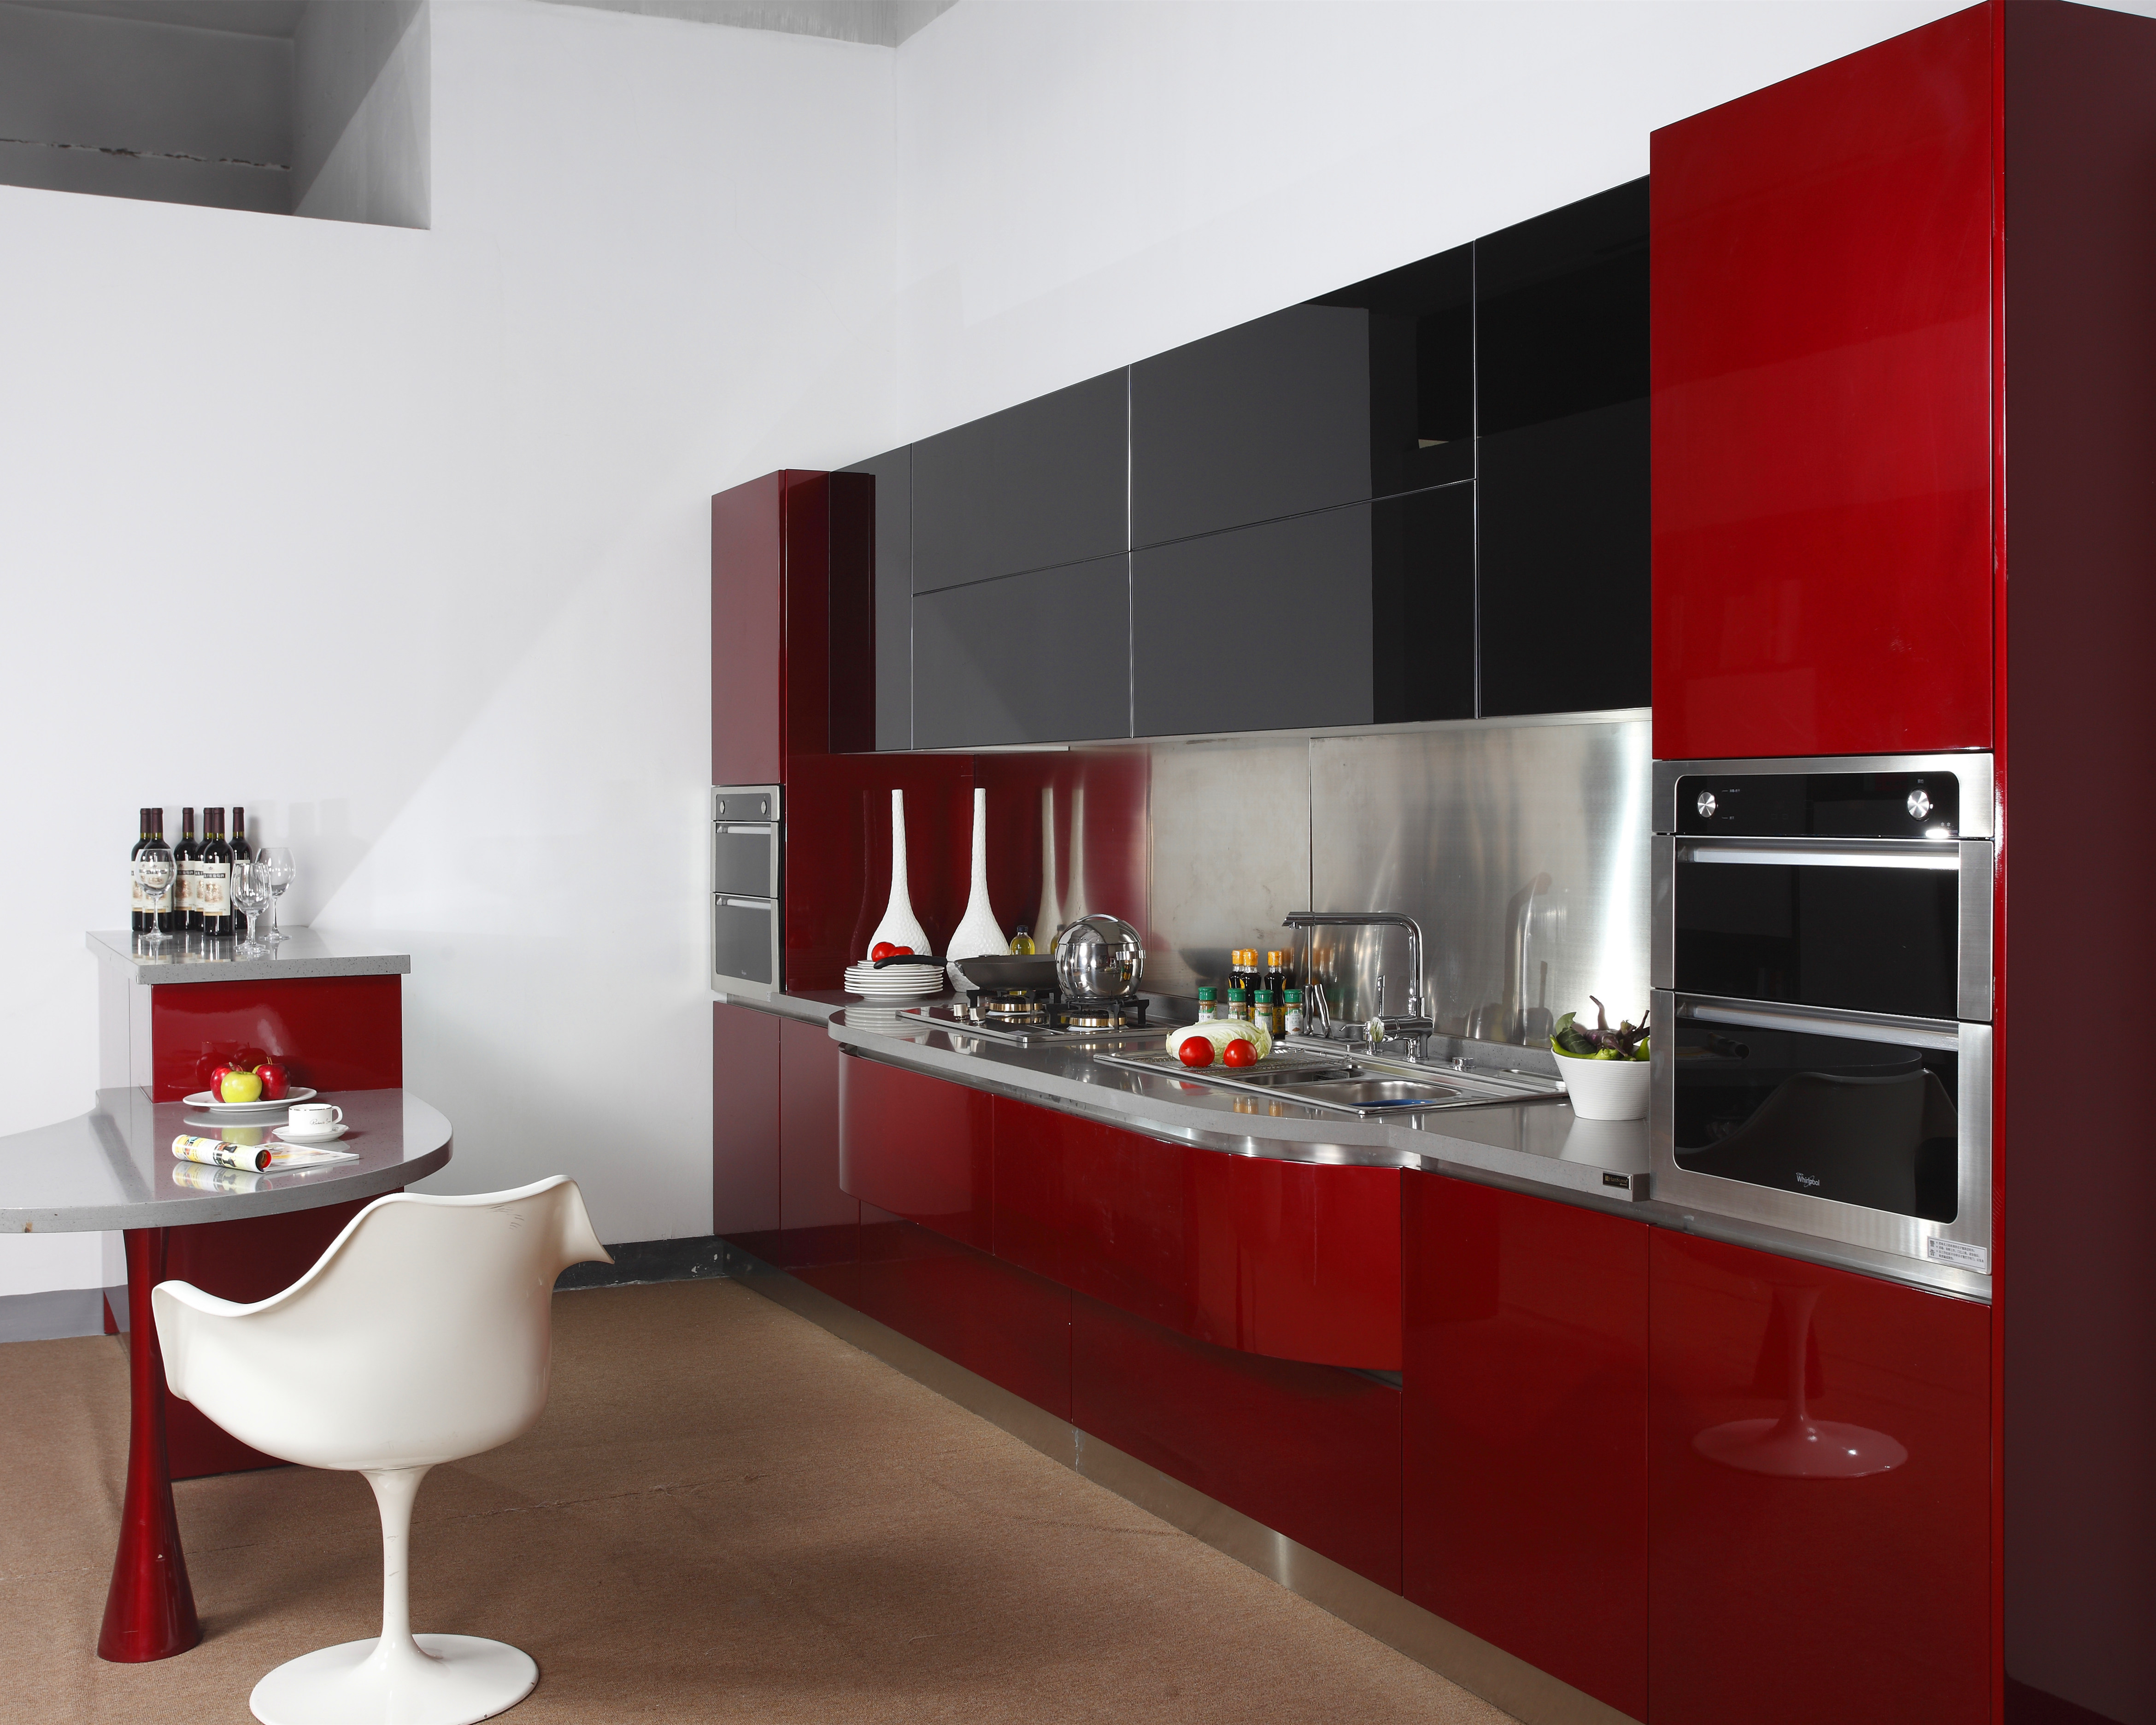 2019 New Red High Gloss Lacquer Kitchen Cabinet With Black Tempered Glass Doors Kitchen Cabinets Buy Round Kitchen Cabinets Kitchen Wall Cabinets With Glass Doors High Gloss Red Kitchen Cabinet Product On Alibaba Com